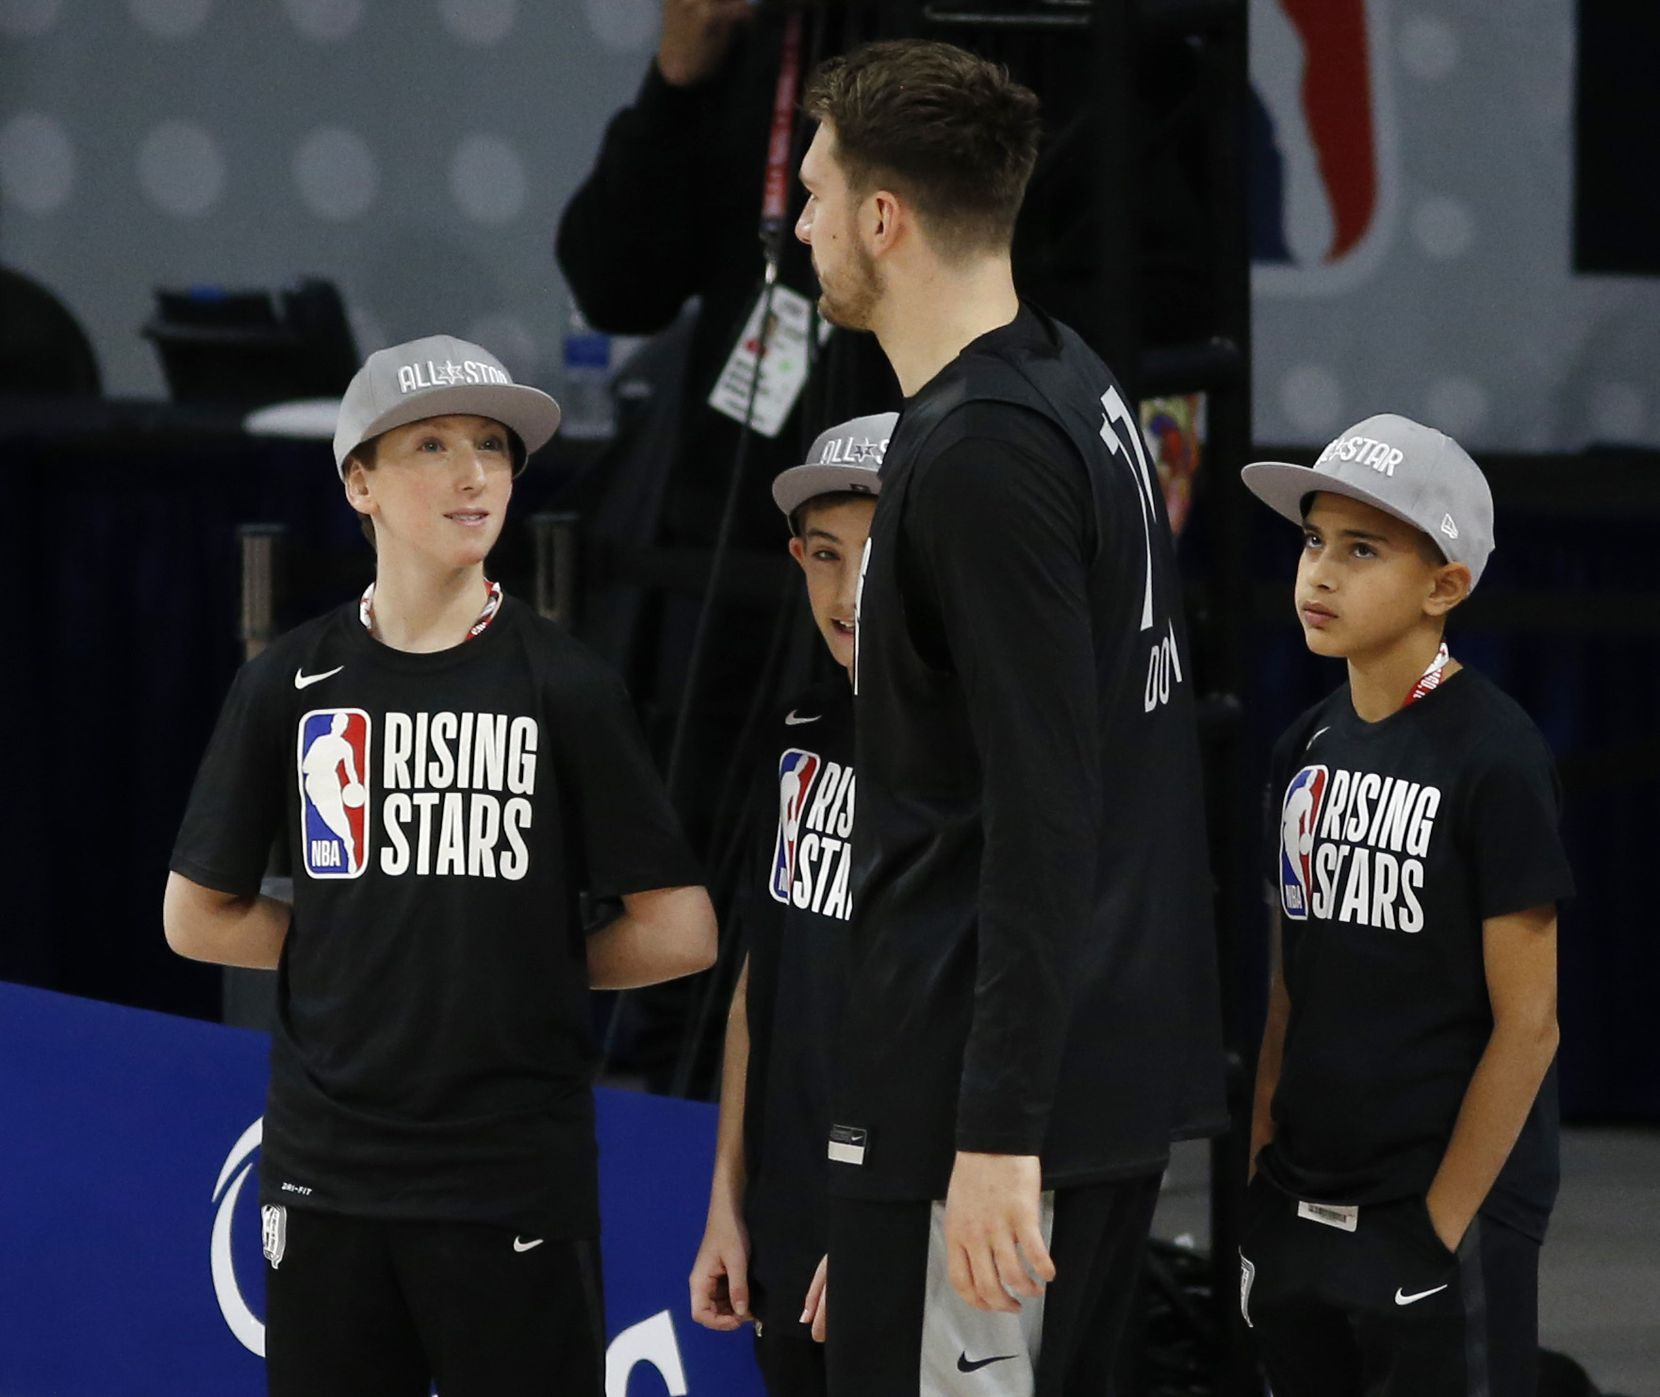 Kids look up to Dallas Mavericks forward Luka Doncic (77) as he walks by during the NBA Rising Stars practice for the World Team at Wintrust Arena during the NBA All Star 2020 event in Chicago on Friday, February 14, 2020.